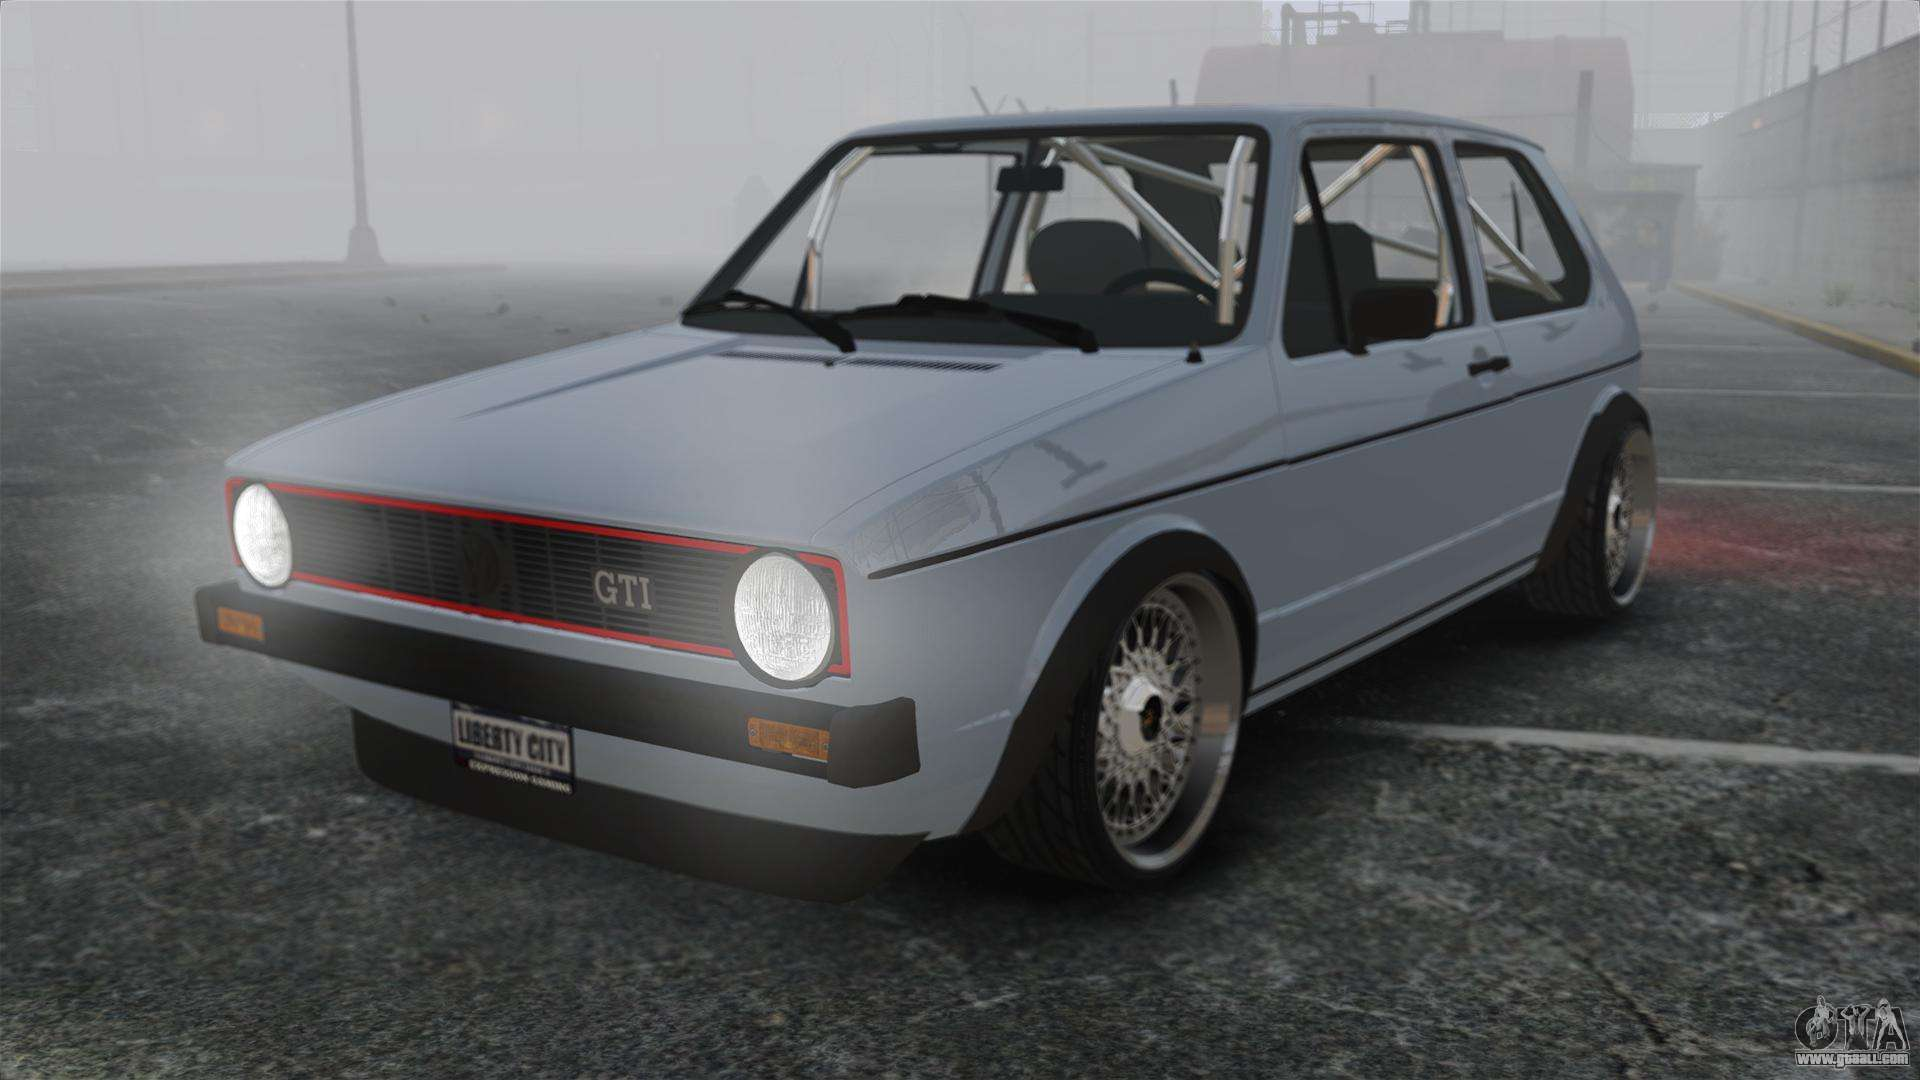 volkswagen golf mk1 gti update v1 for gta 4. Black Bedroom Furniture Sets. Home Design Ideas